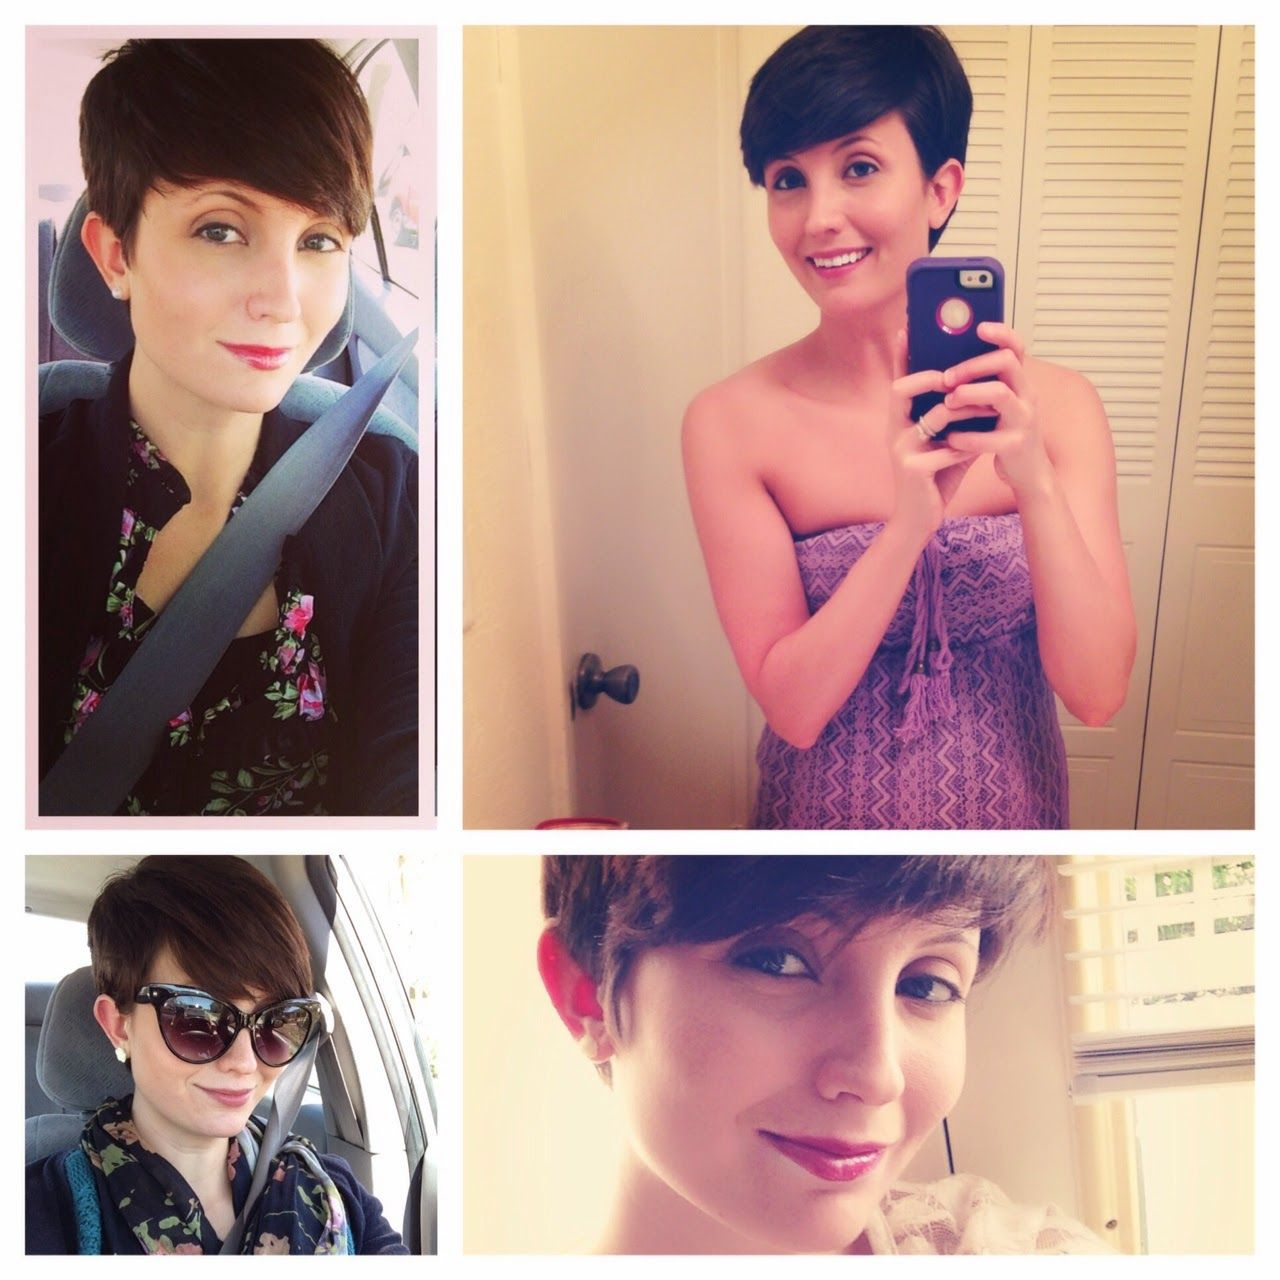 17 Things Everyone Growing Out A Pixie Cut Should Know further Healthy Vita  Growing Out a Pixie Cut One Year Later    Hair moreover How to Grow Out Your Hair   Celebs Growing Out Short Hair also  moreover How to Grow Out Your Hair   Celebs Growing Out Short Hair in addition How to Grow Out a Pixie Cut Gracefully   Let's Talk About Lipstick besides  further  also Growing out a pixie cut  a plan   Lost in a Spotless Mind further  moreover unspeakable visions  the pixie cut series  part 3  growing it out. on haircut for growing out pixie cut